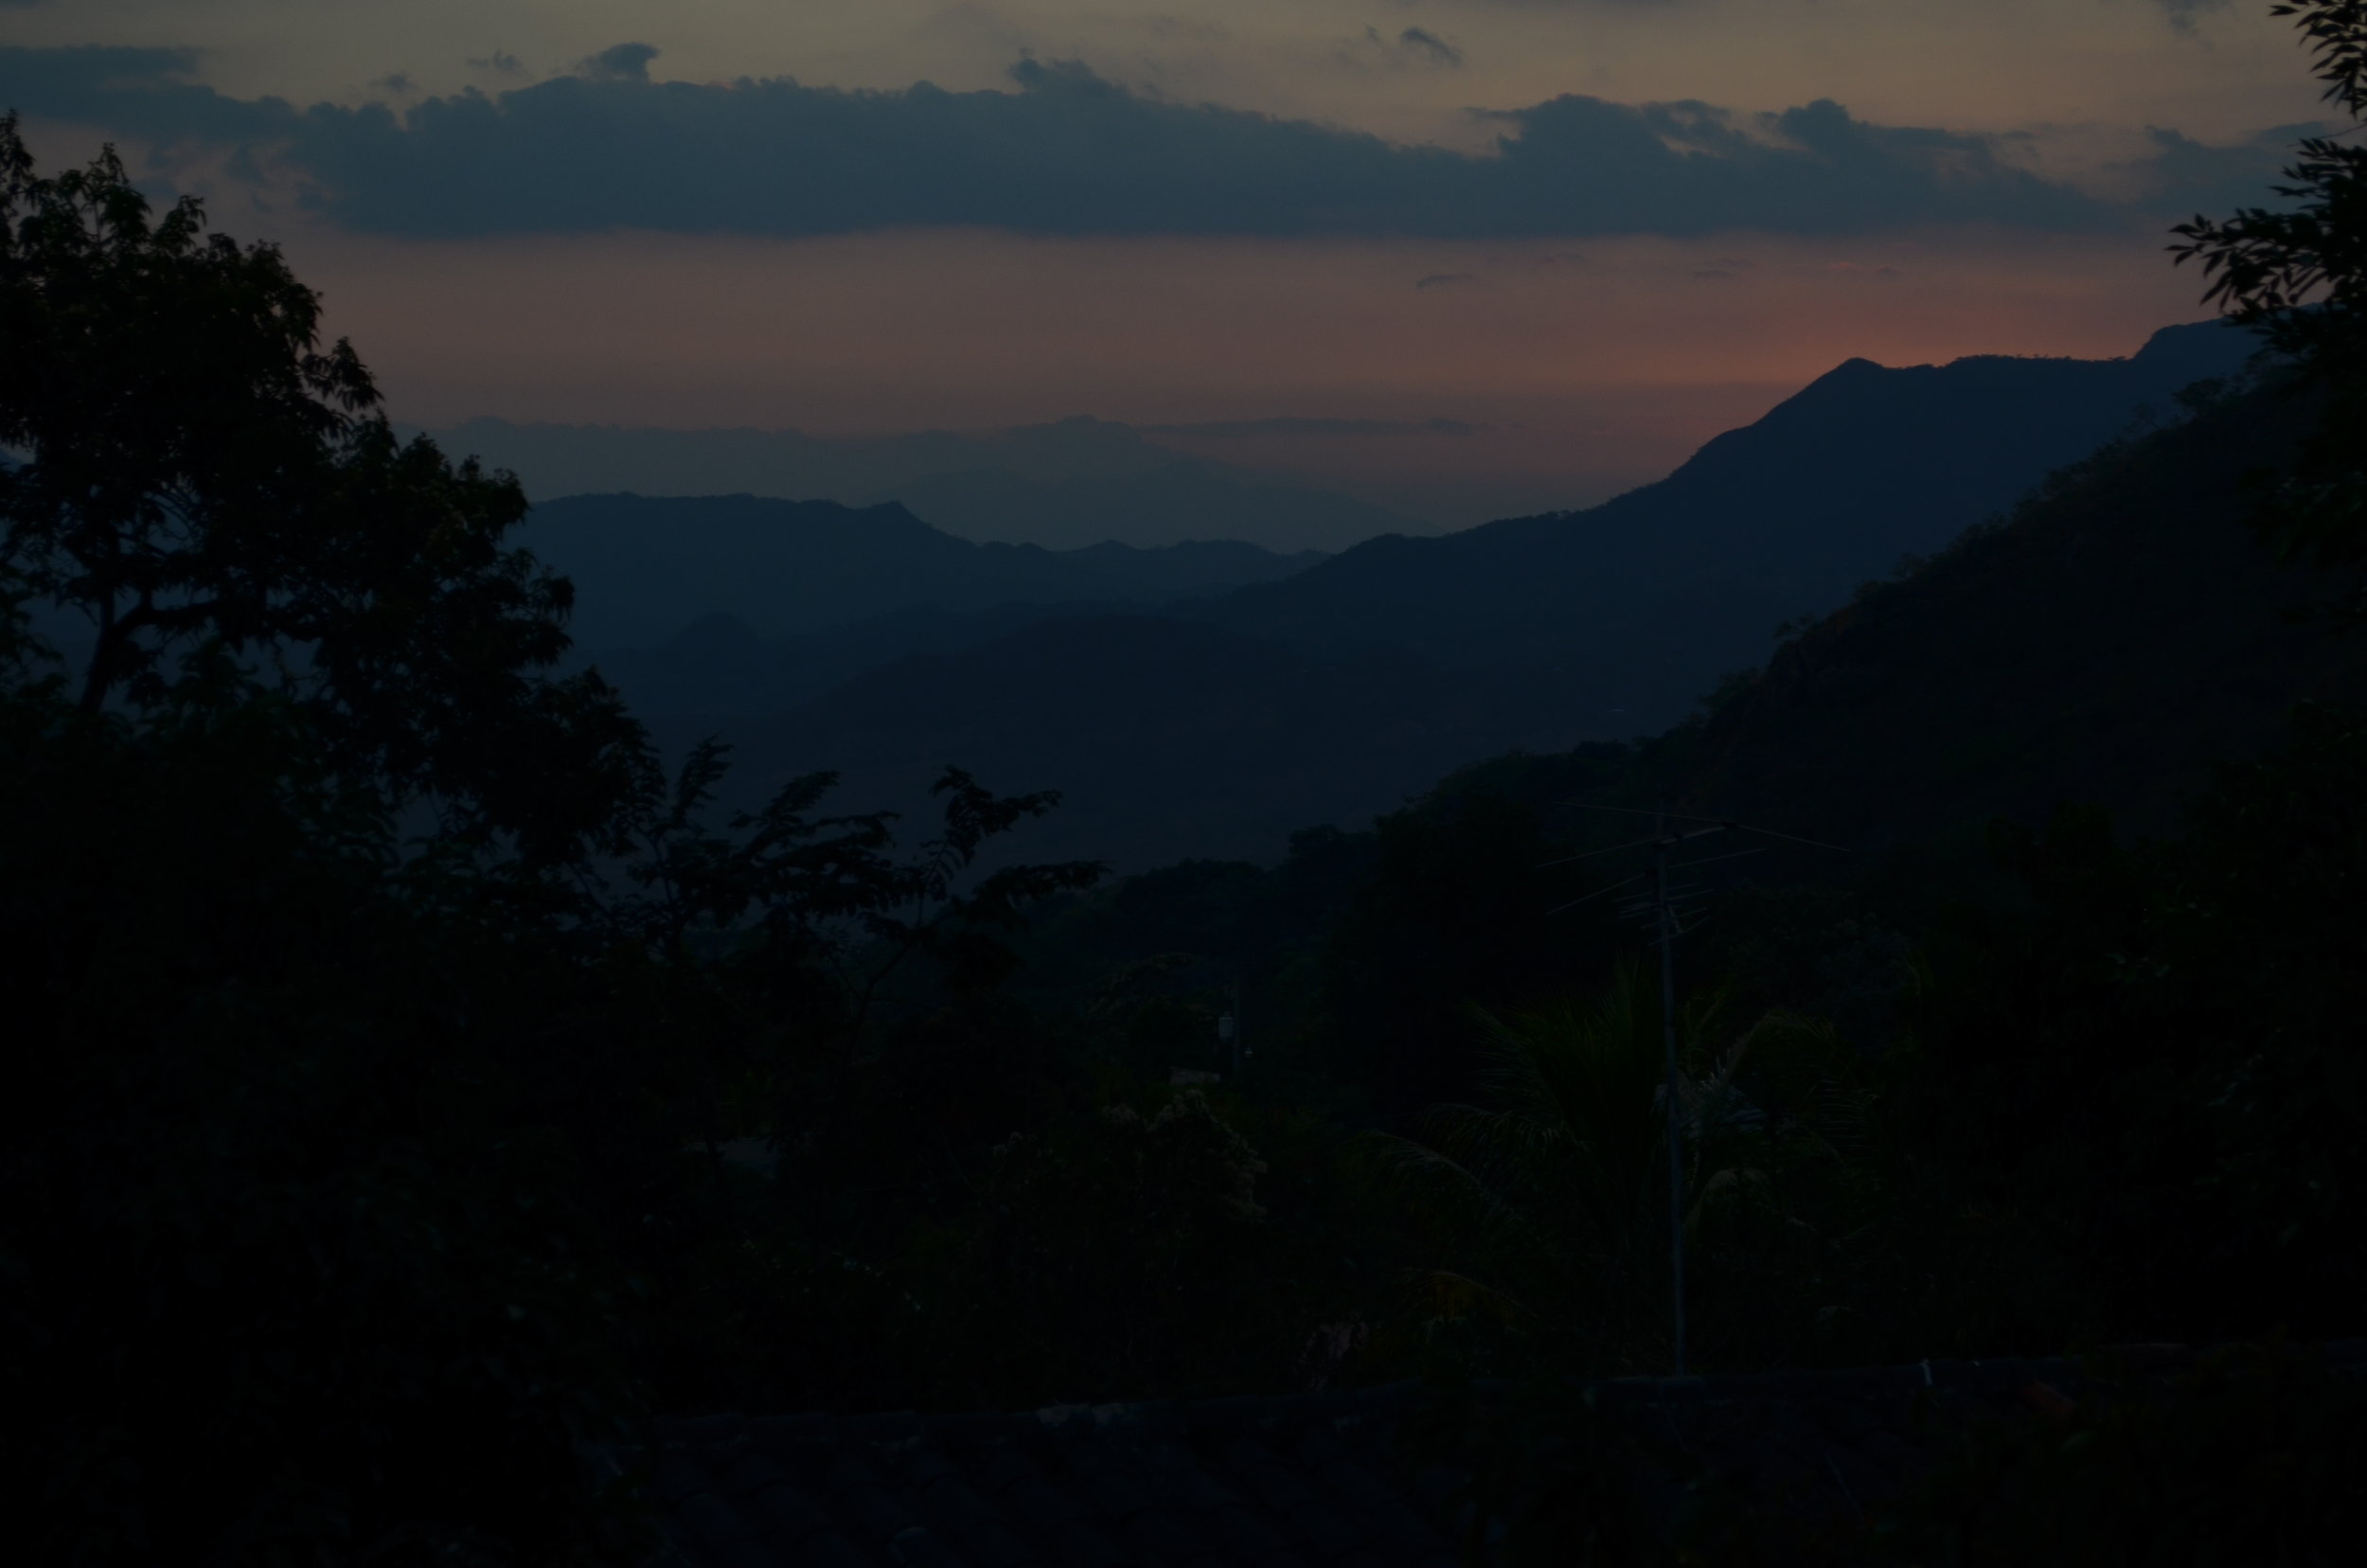 The sun sets over the mountains of Arcatao. Photo by Dalton Anthony.